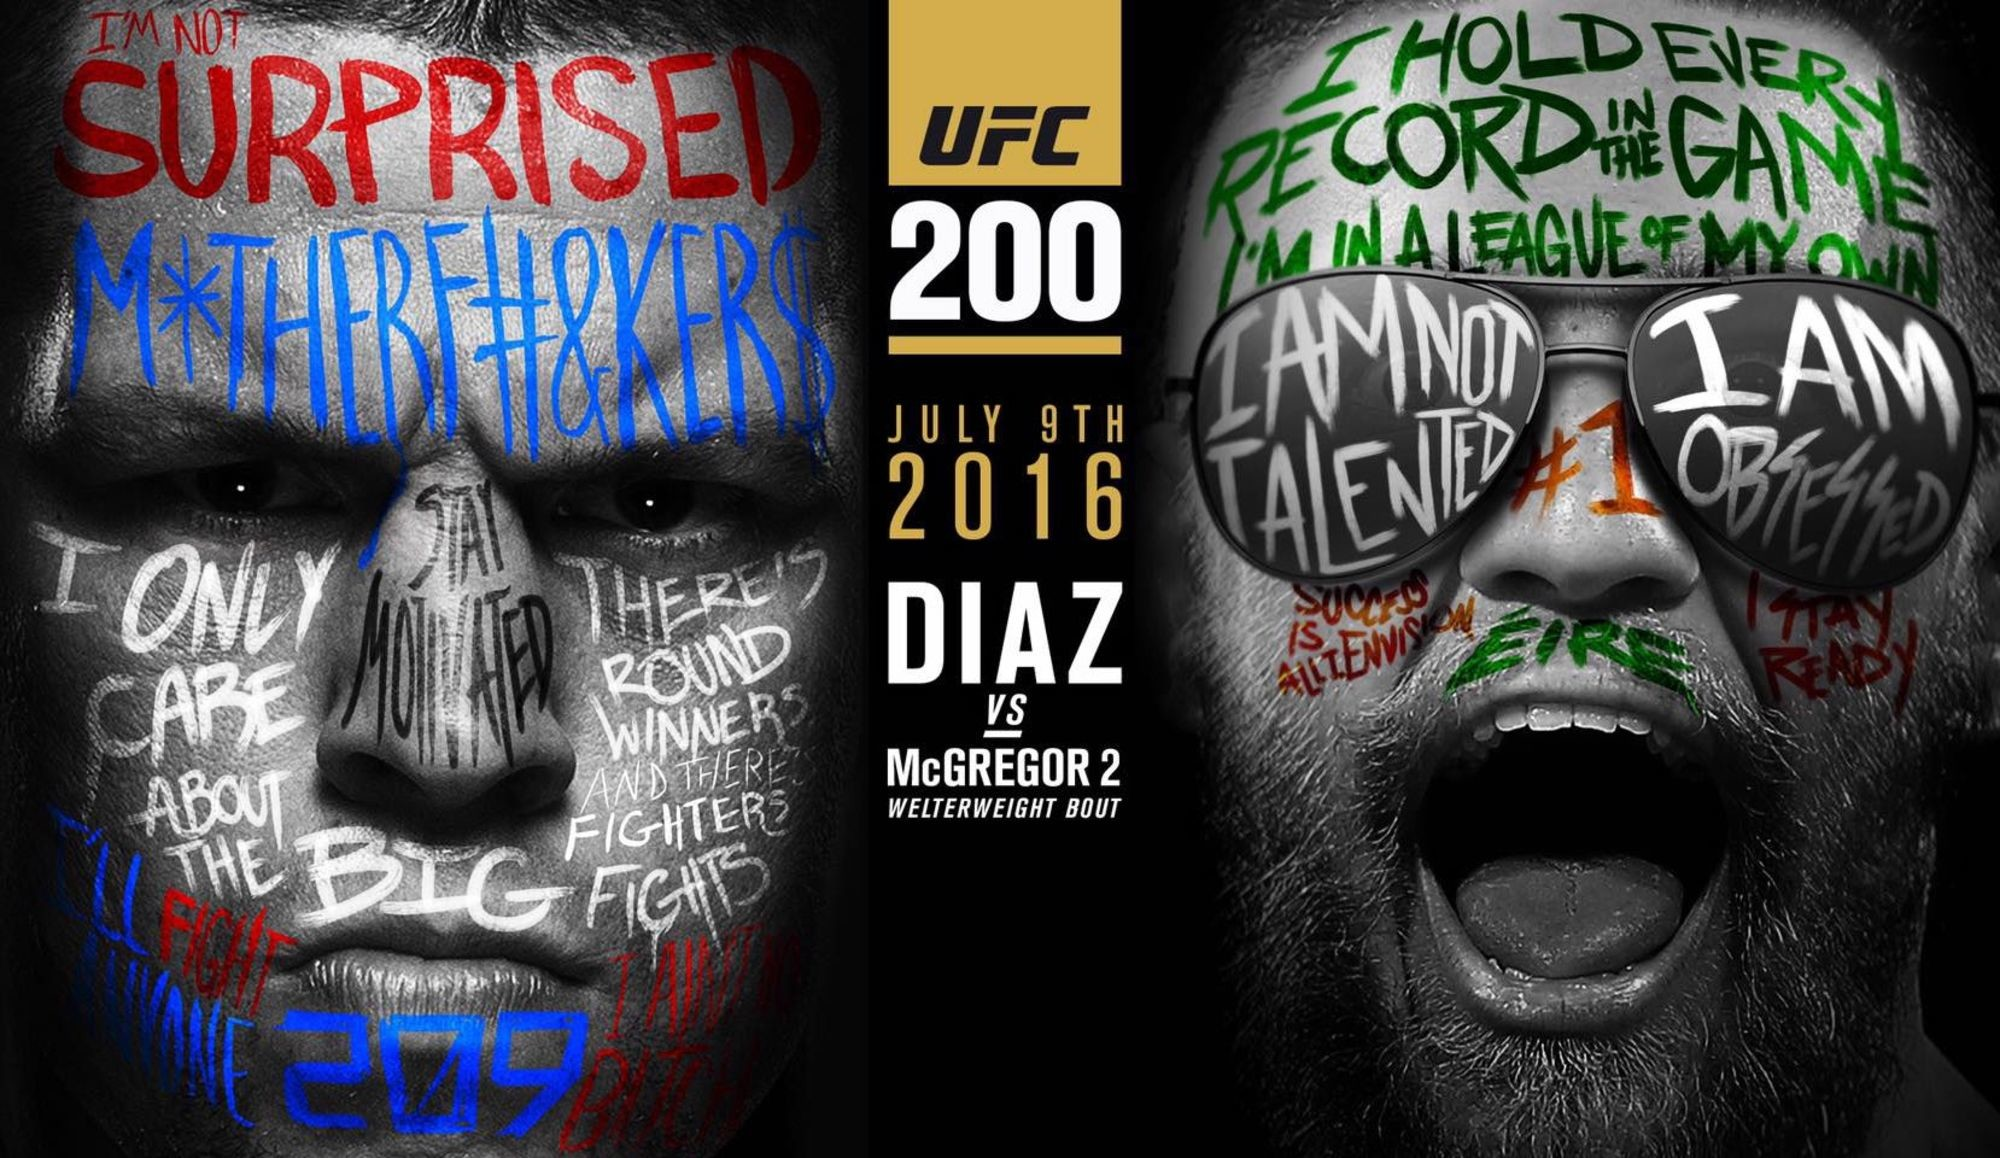 Nate diaz wallpapers 84 images - Free ufc wallpapers ...